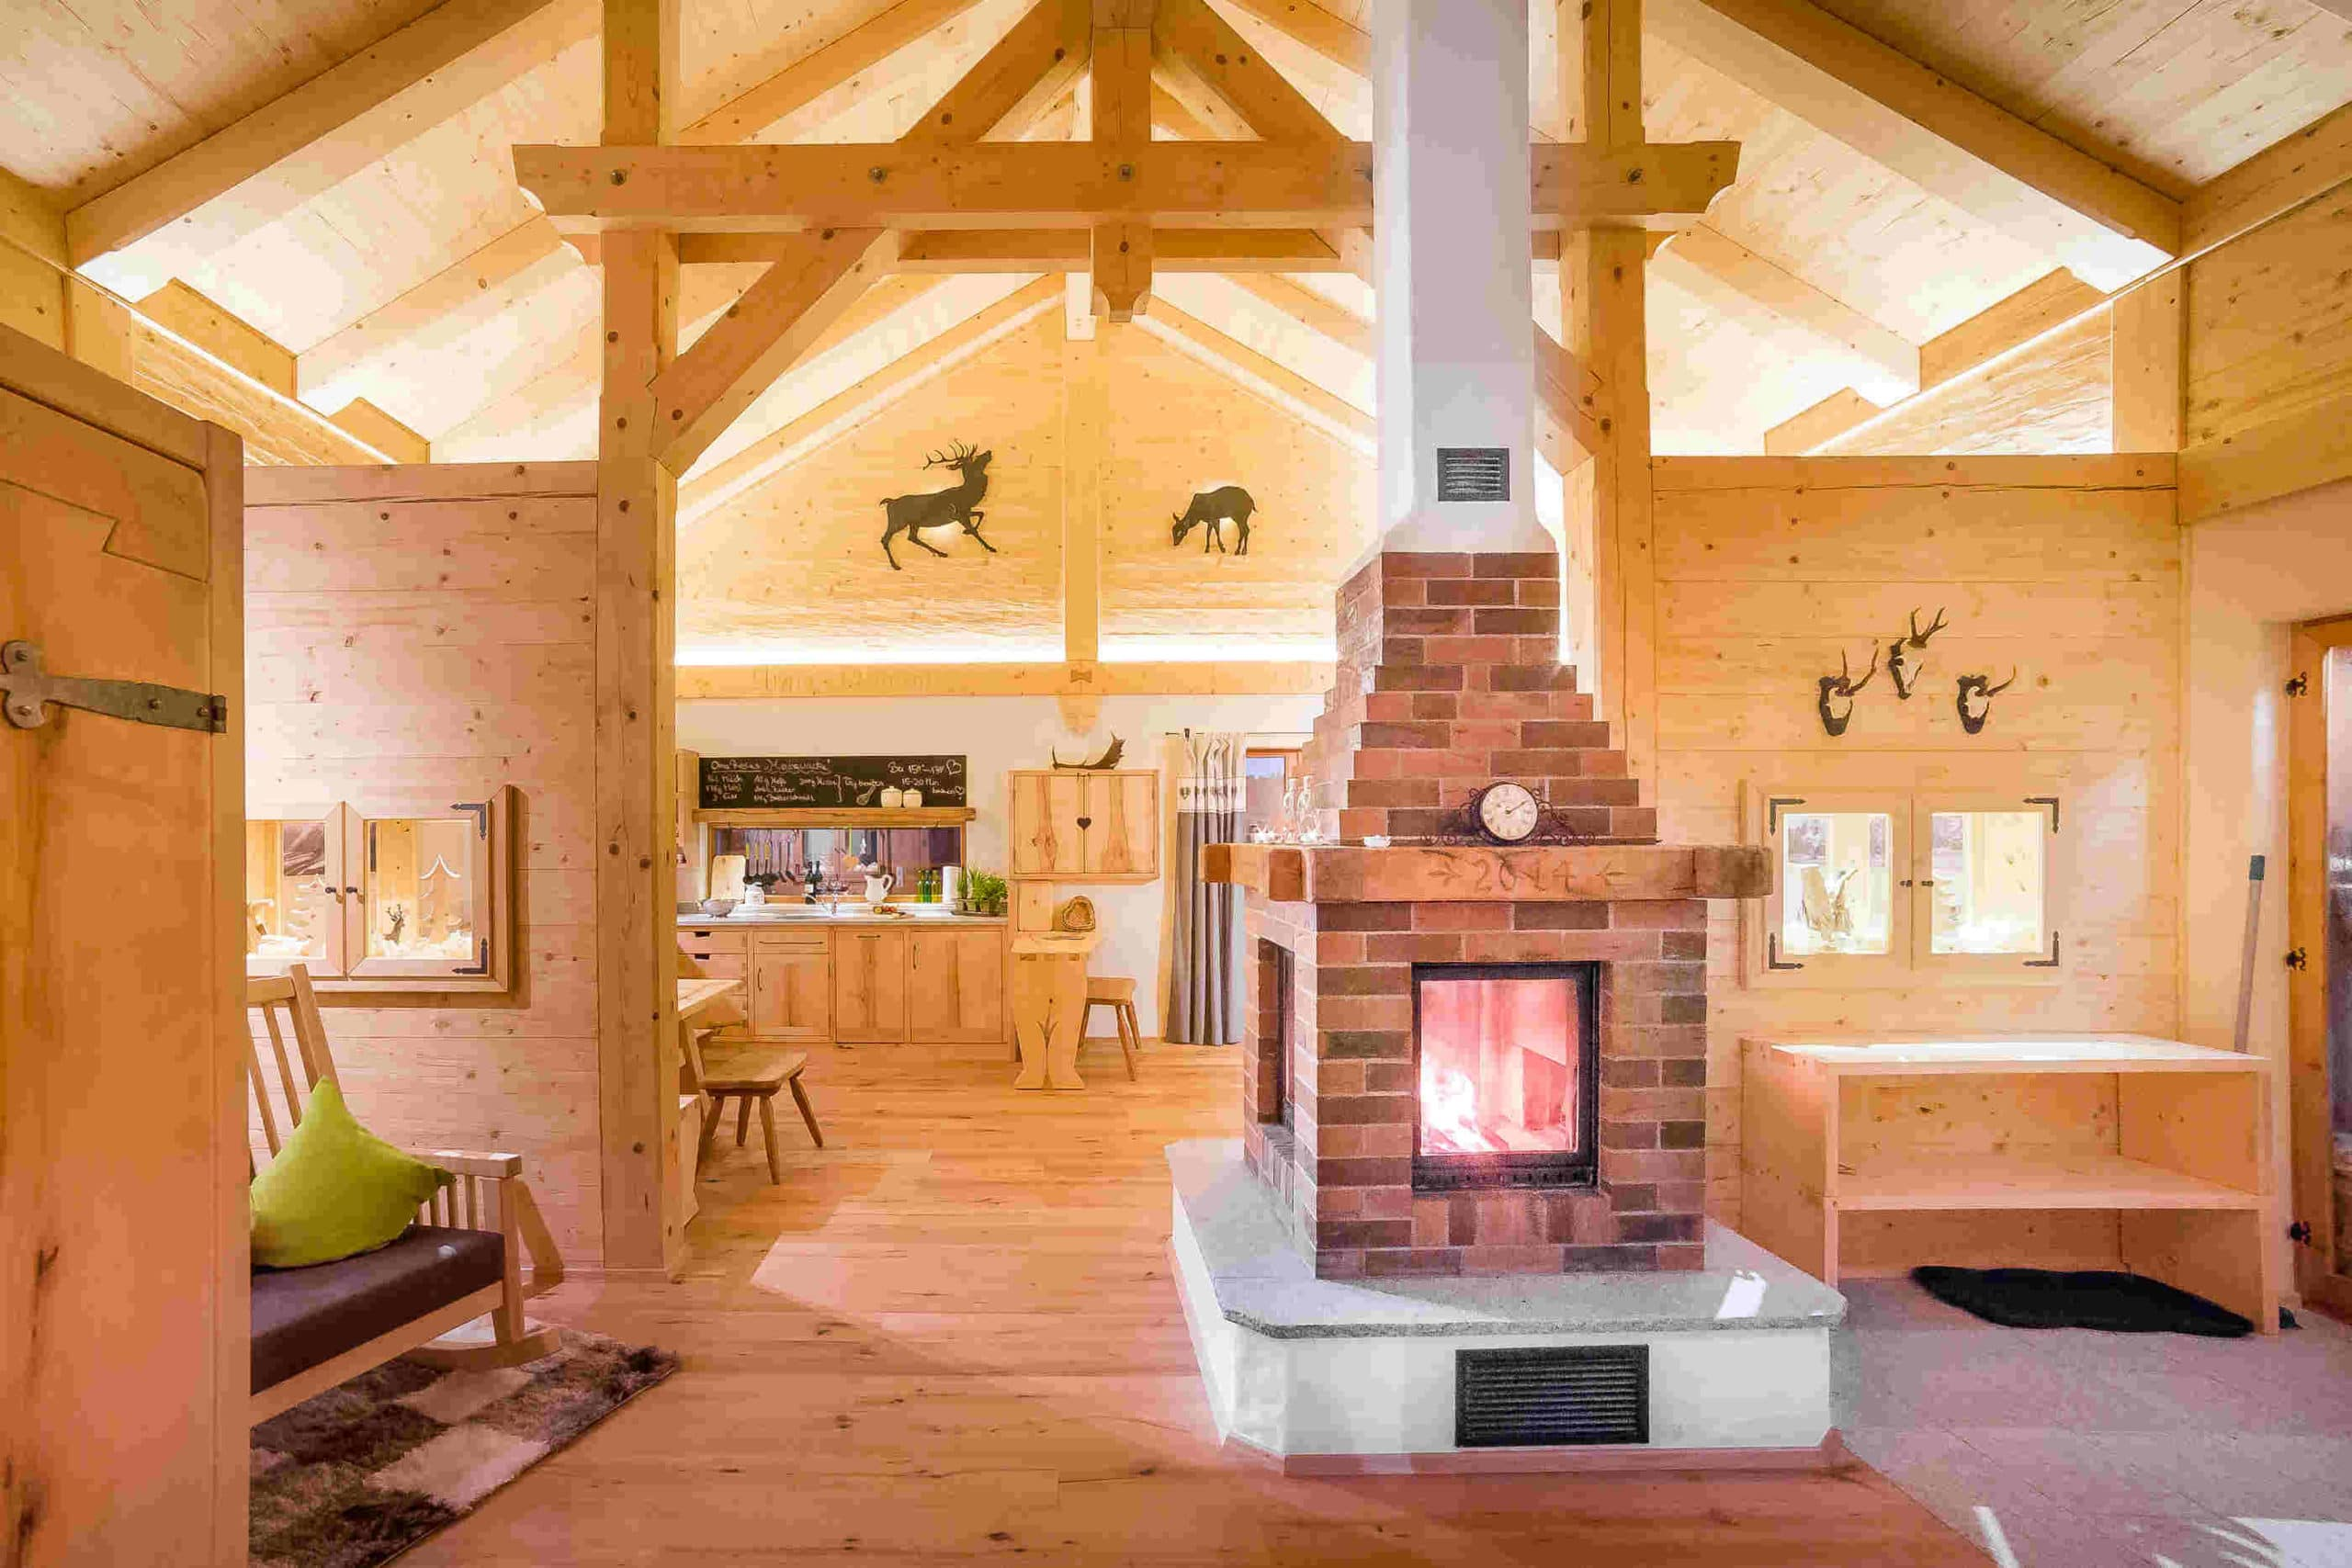 Holz Chalet in Bayern